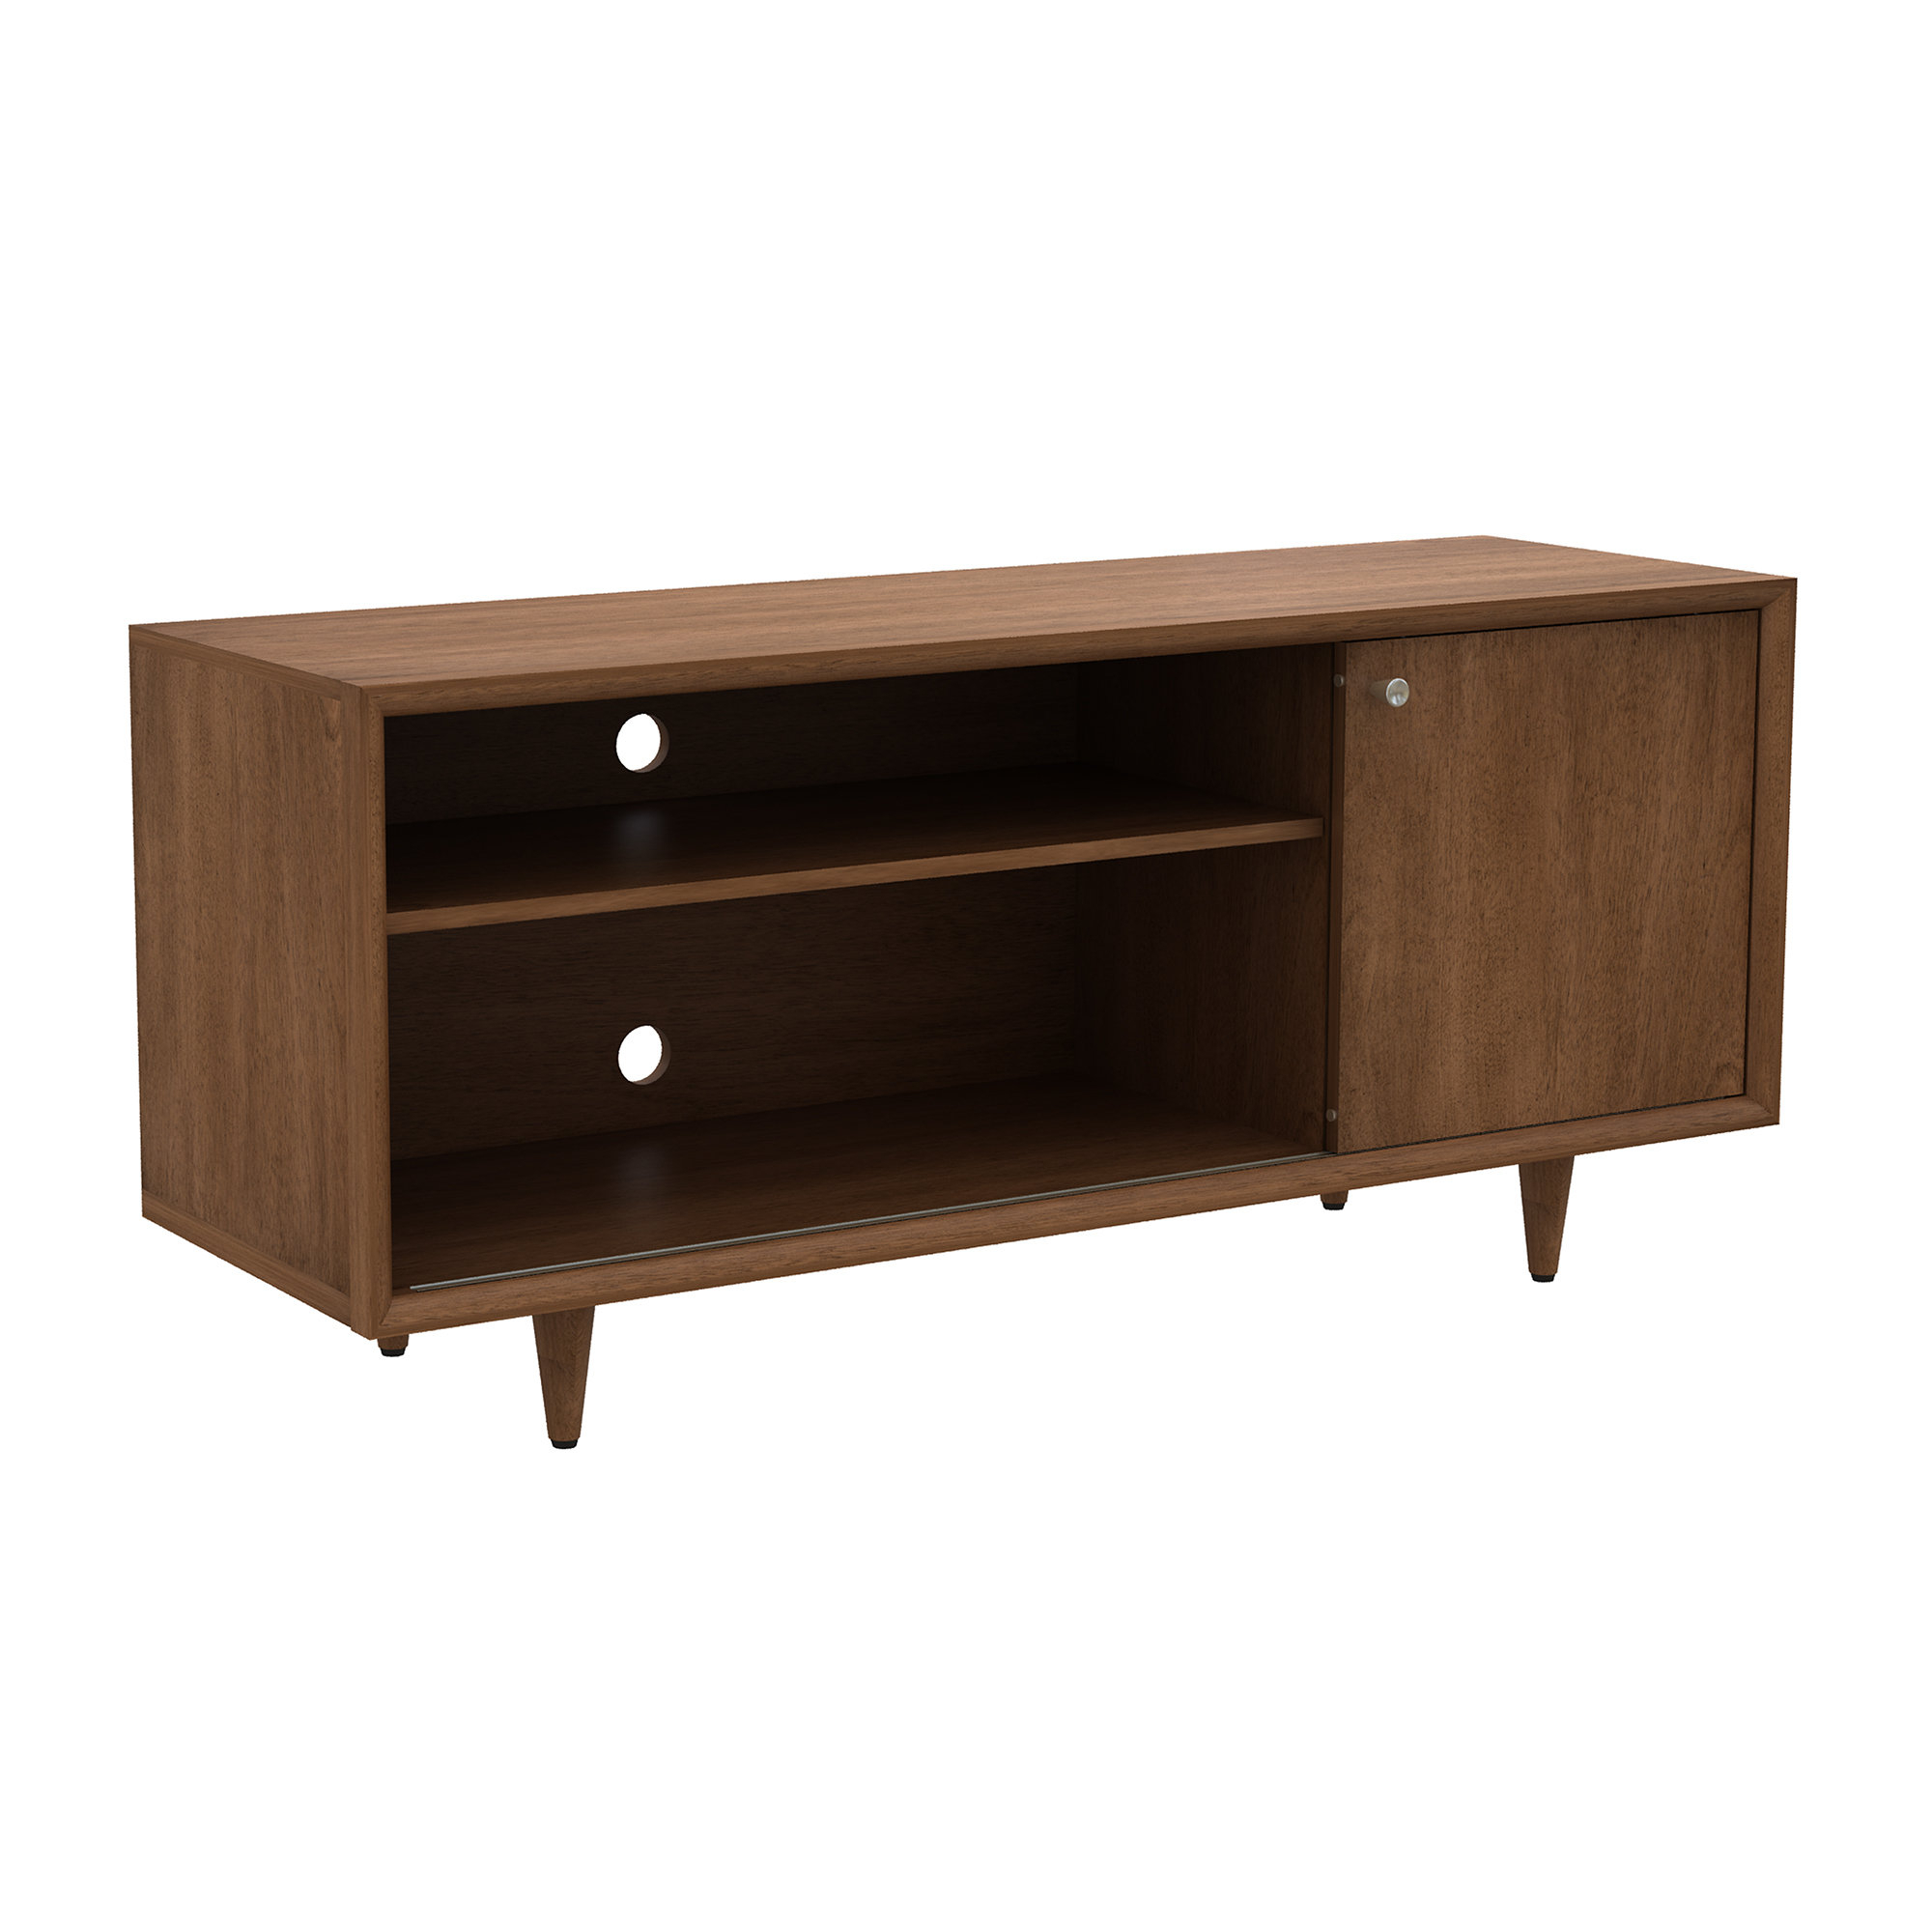 Yellow Tv Stands For Fashionable Modern Medium Yellow Wood Tv Stands (View 14 of 20)